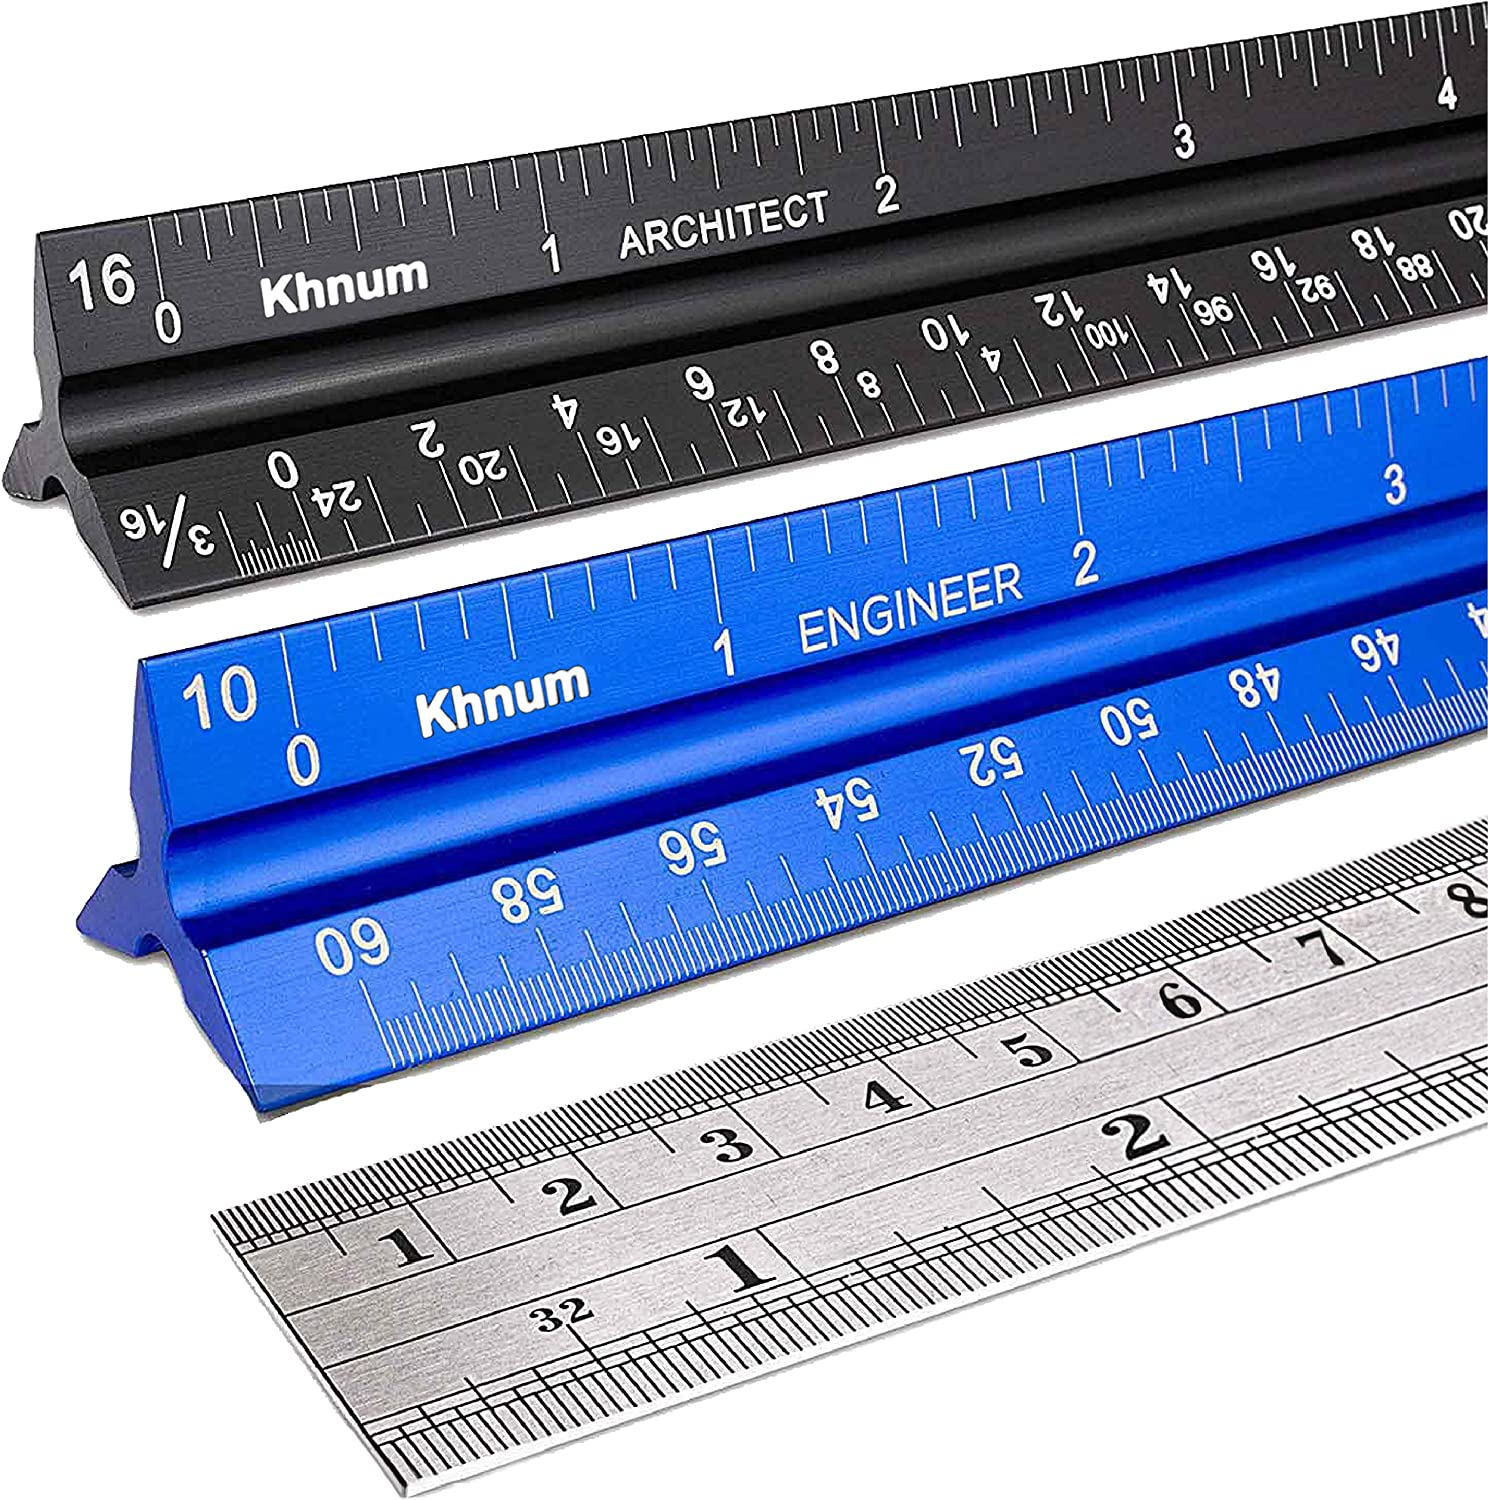 12-Inch Architectural and Engineering Scale Ruler Set (Imperial) | Laser-Etched Aluminum Triangular Drafting Tool | for Architect and Civil Engineer Blueprints | Standard Metal Ruler Included